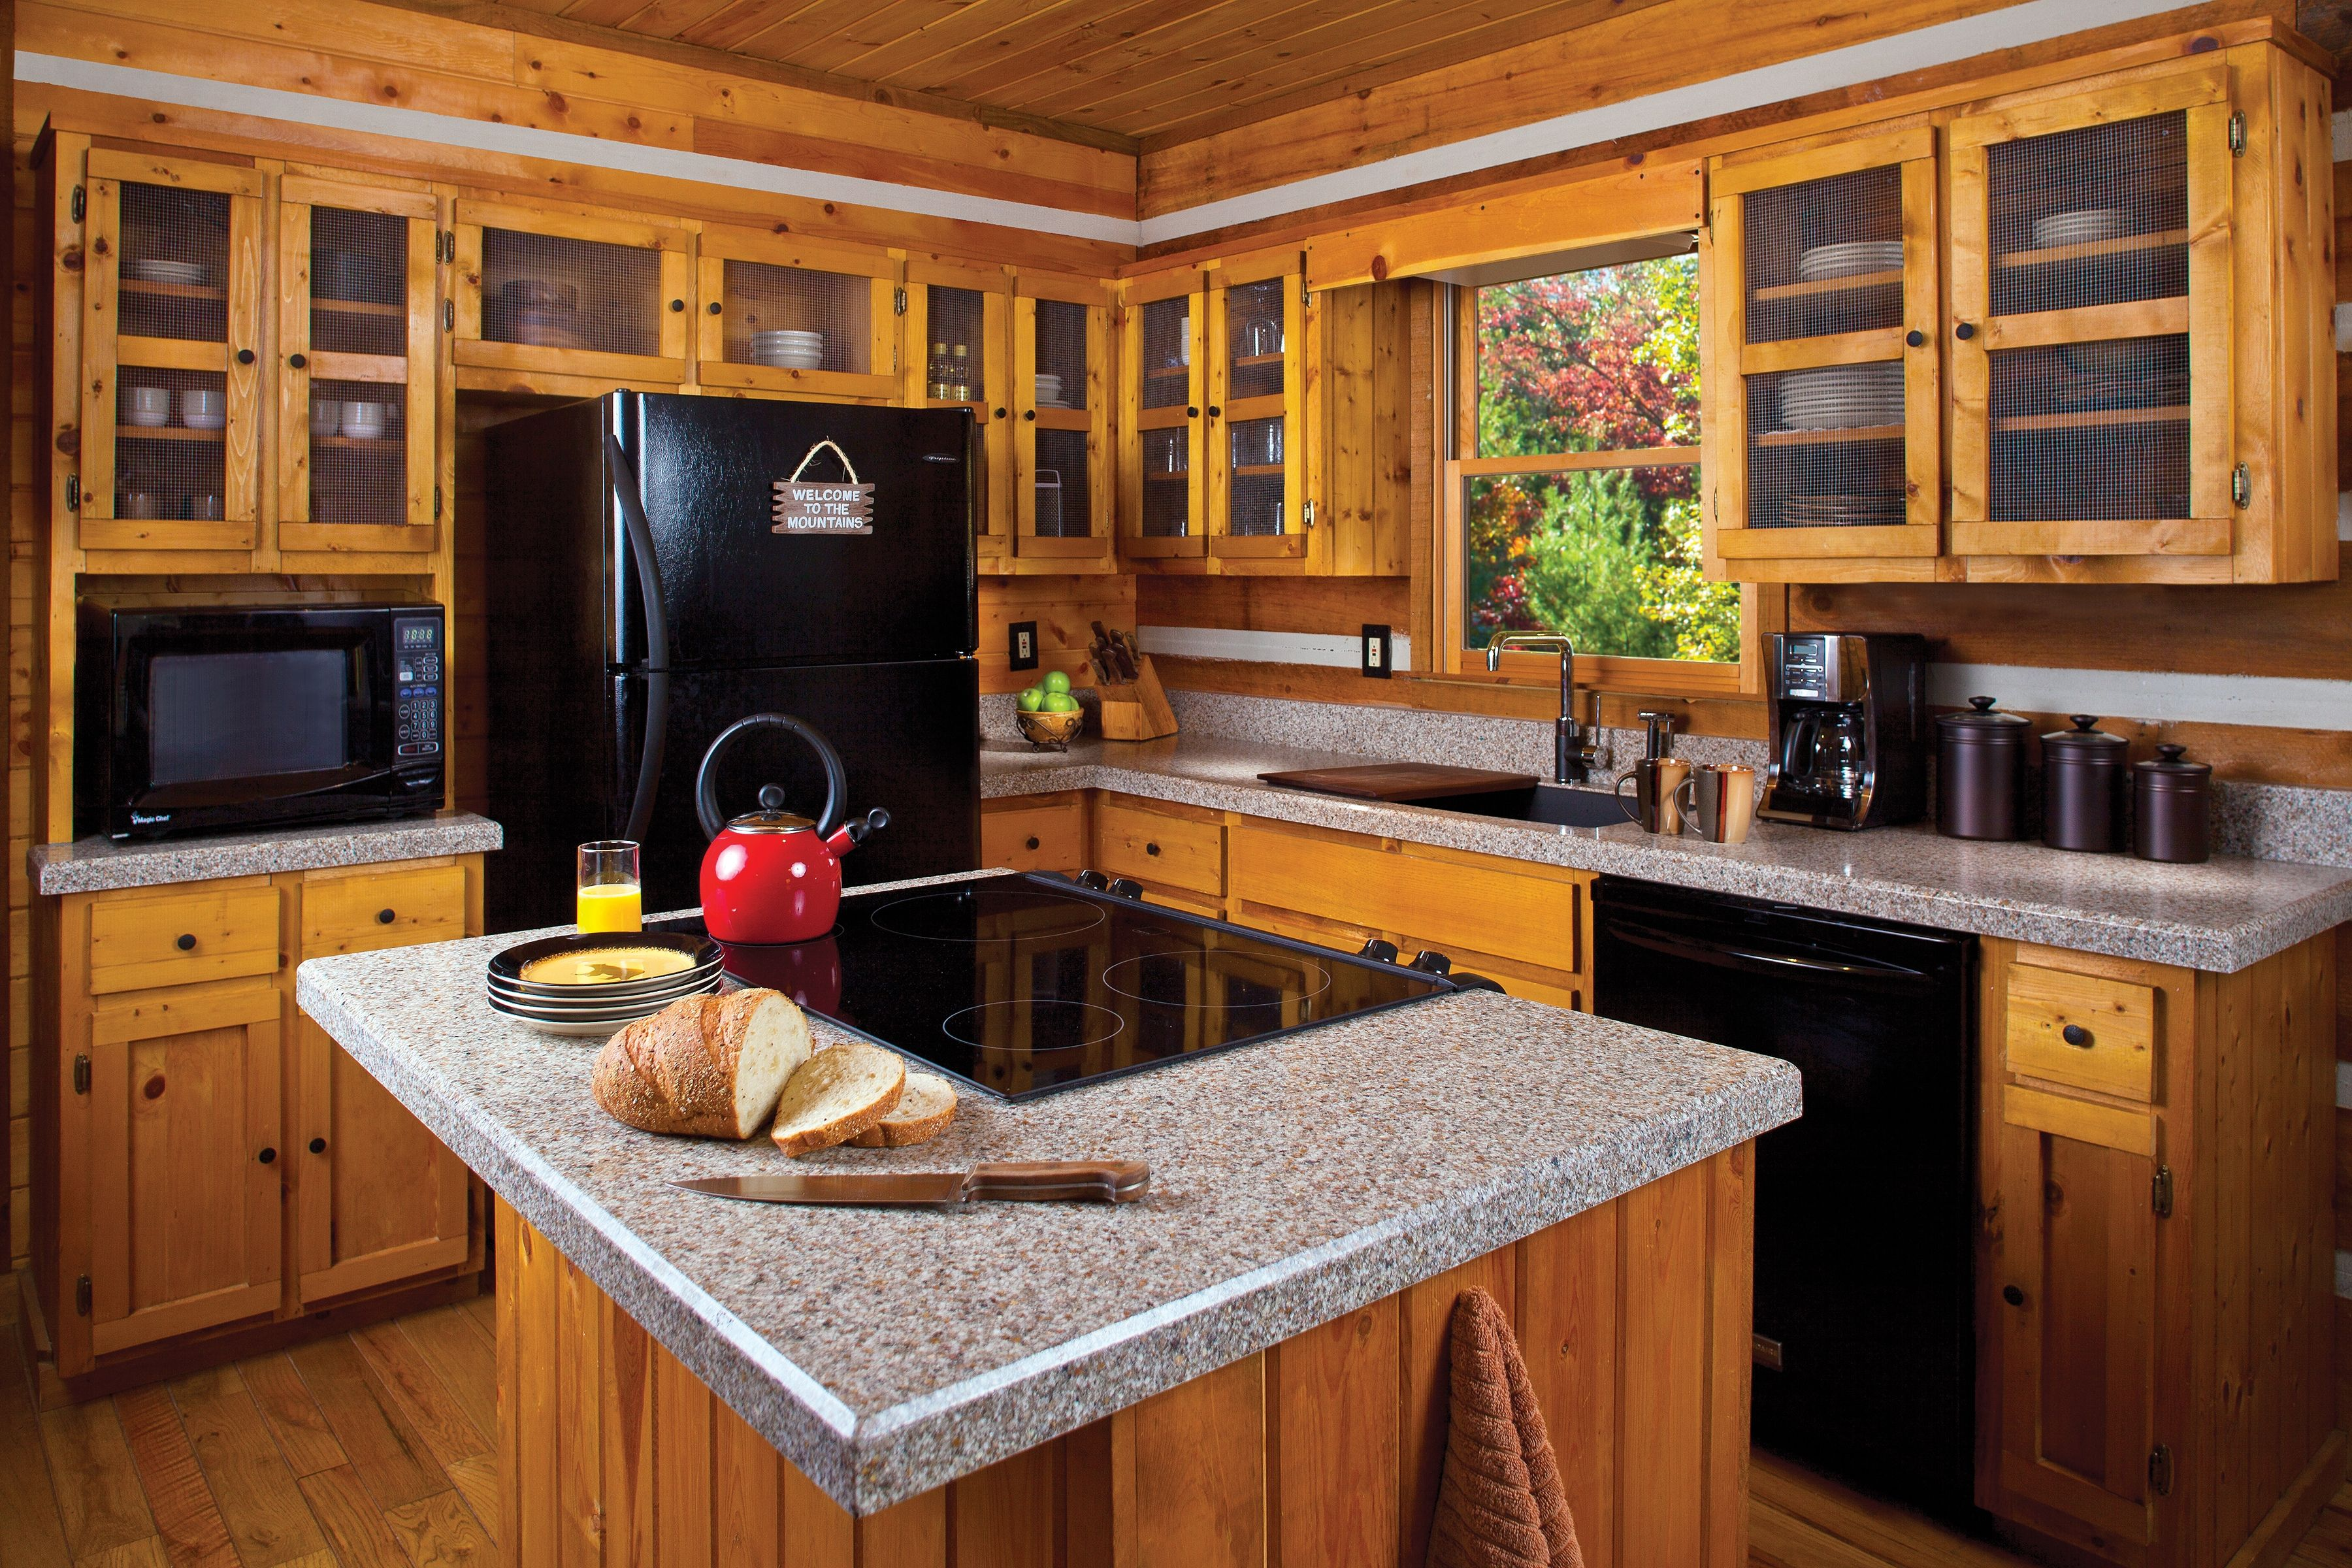 Opulence Log Cabin Country Kitchen Interior Ideas For Small Spaces .